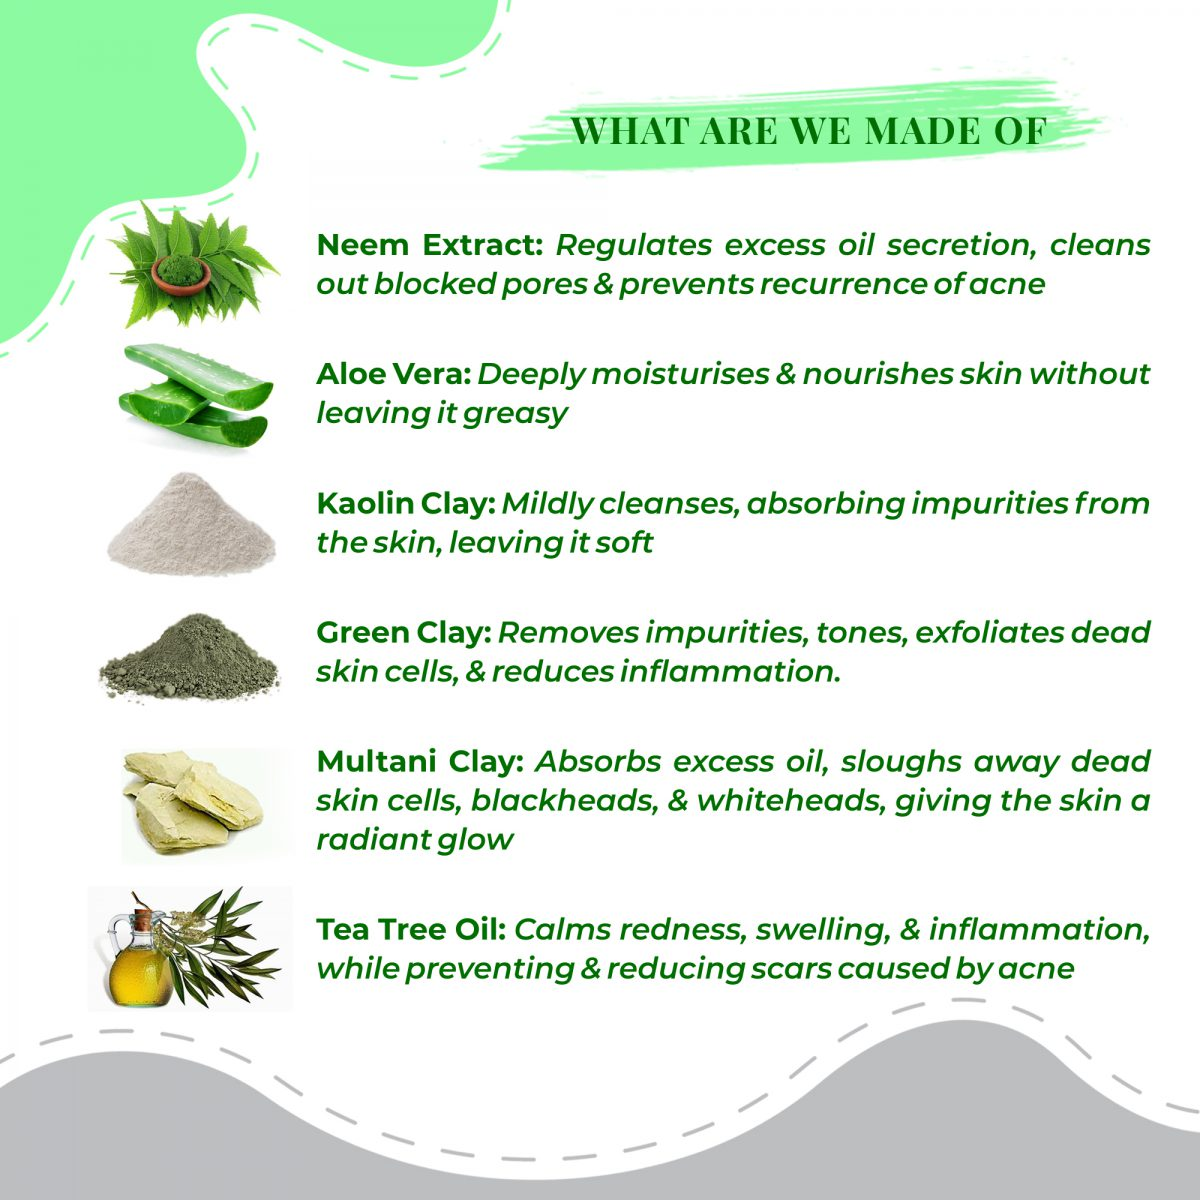 Ingredient Acne Warrior & Oil Control Face Pack | best chemical free face pack for oily skin in india | best face pack for oily acne prone skin | face pack for oily skin in summer